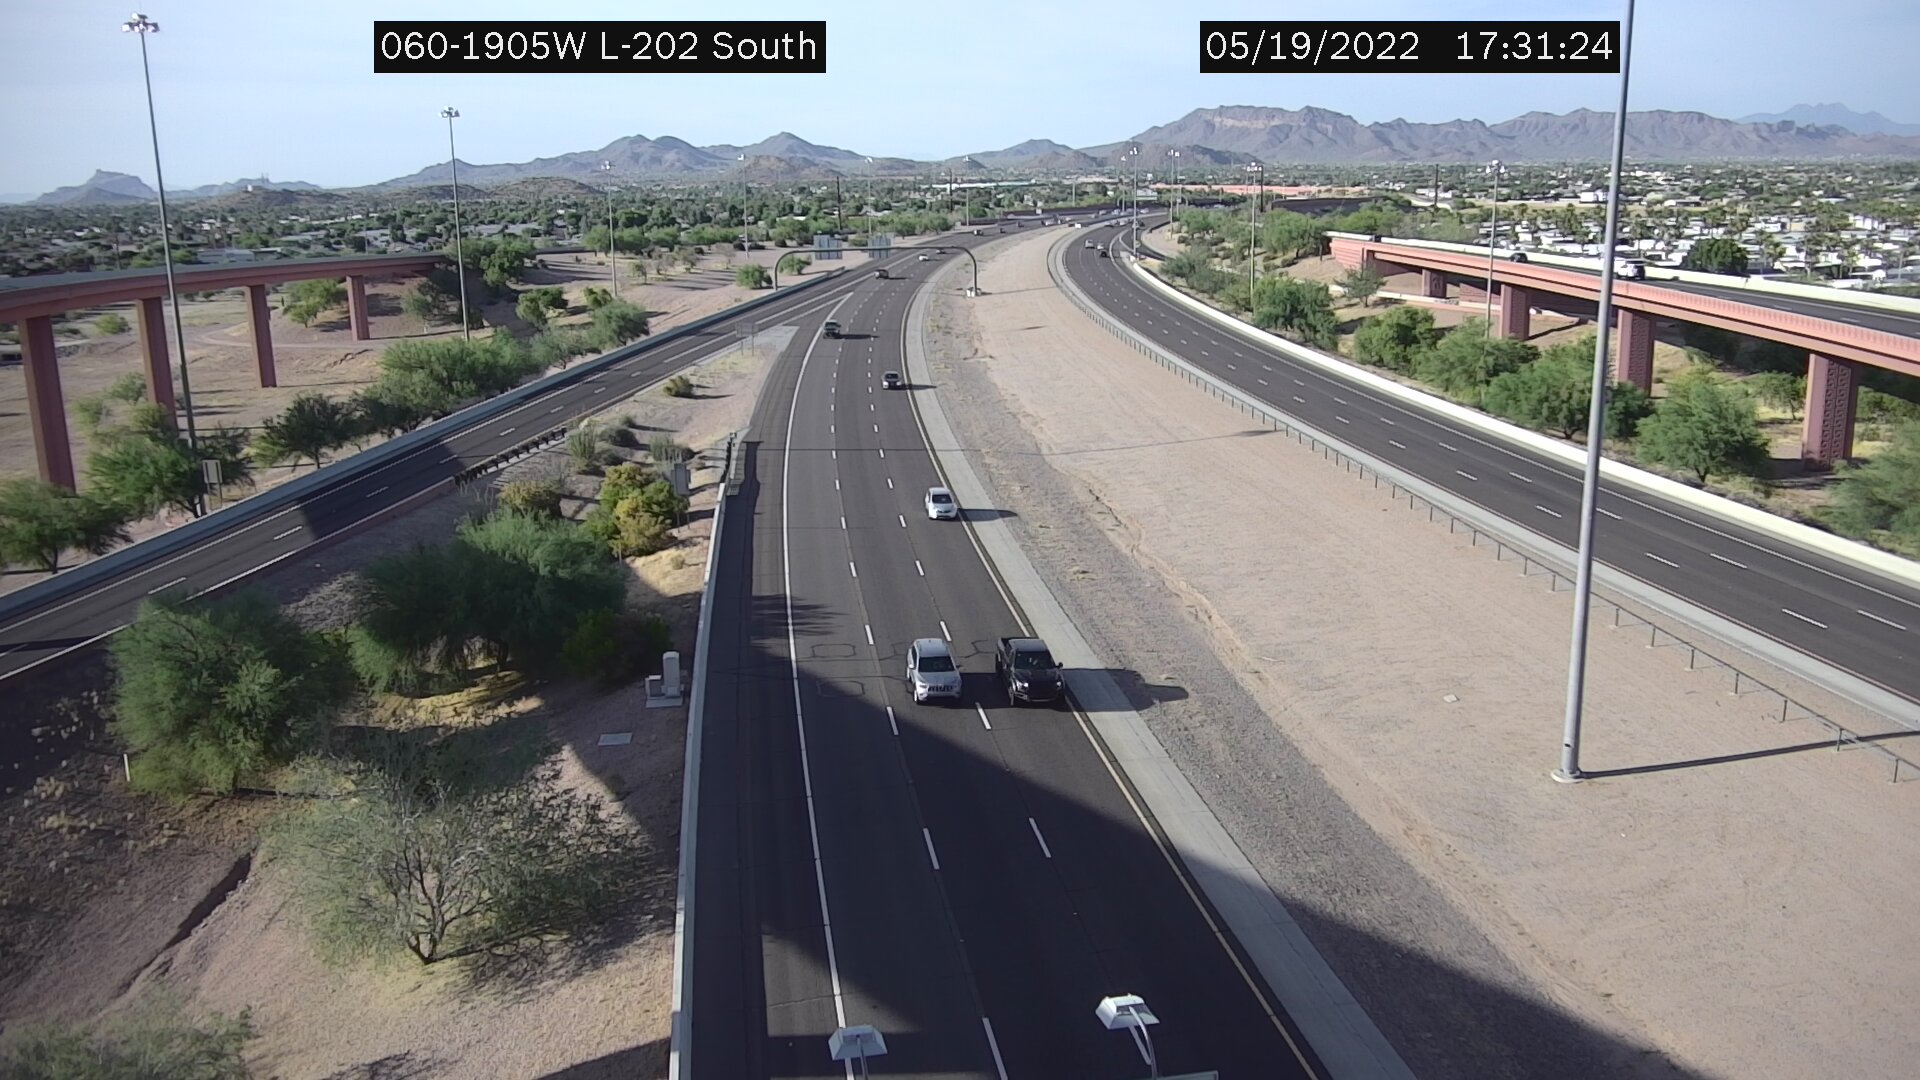 L-202S Super Red Tan EB (US60) (193) - Phoenix and Arizona